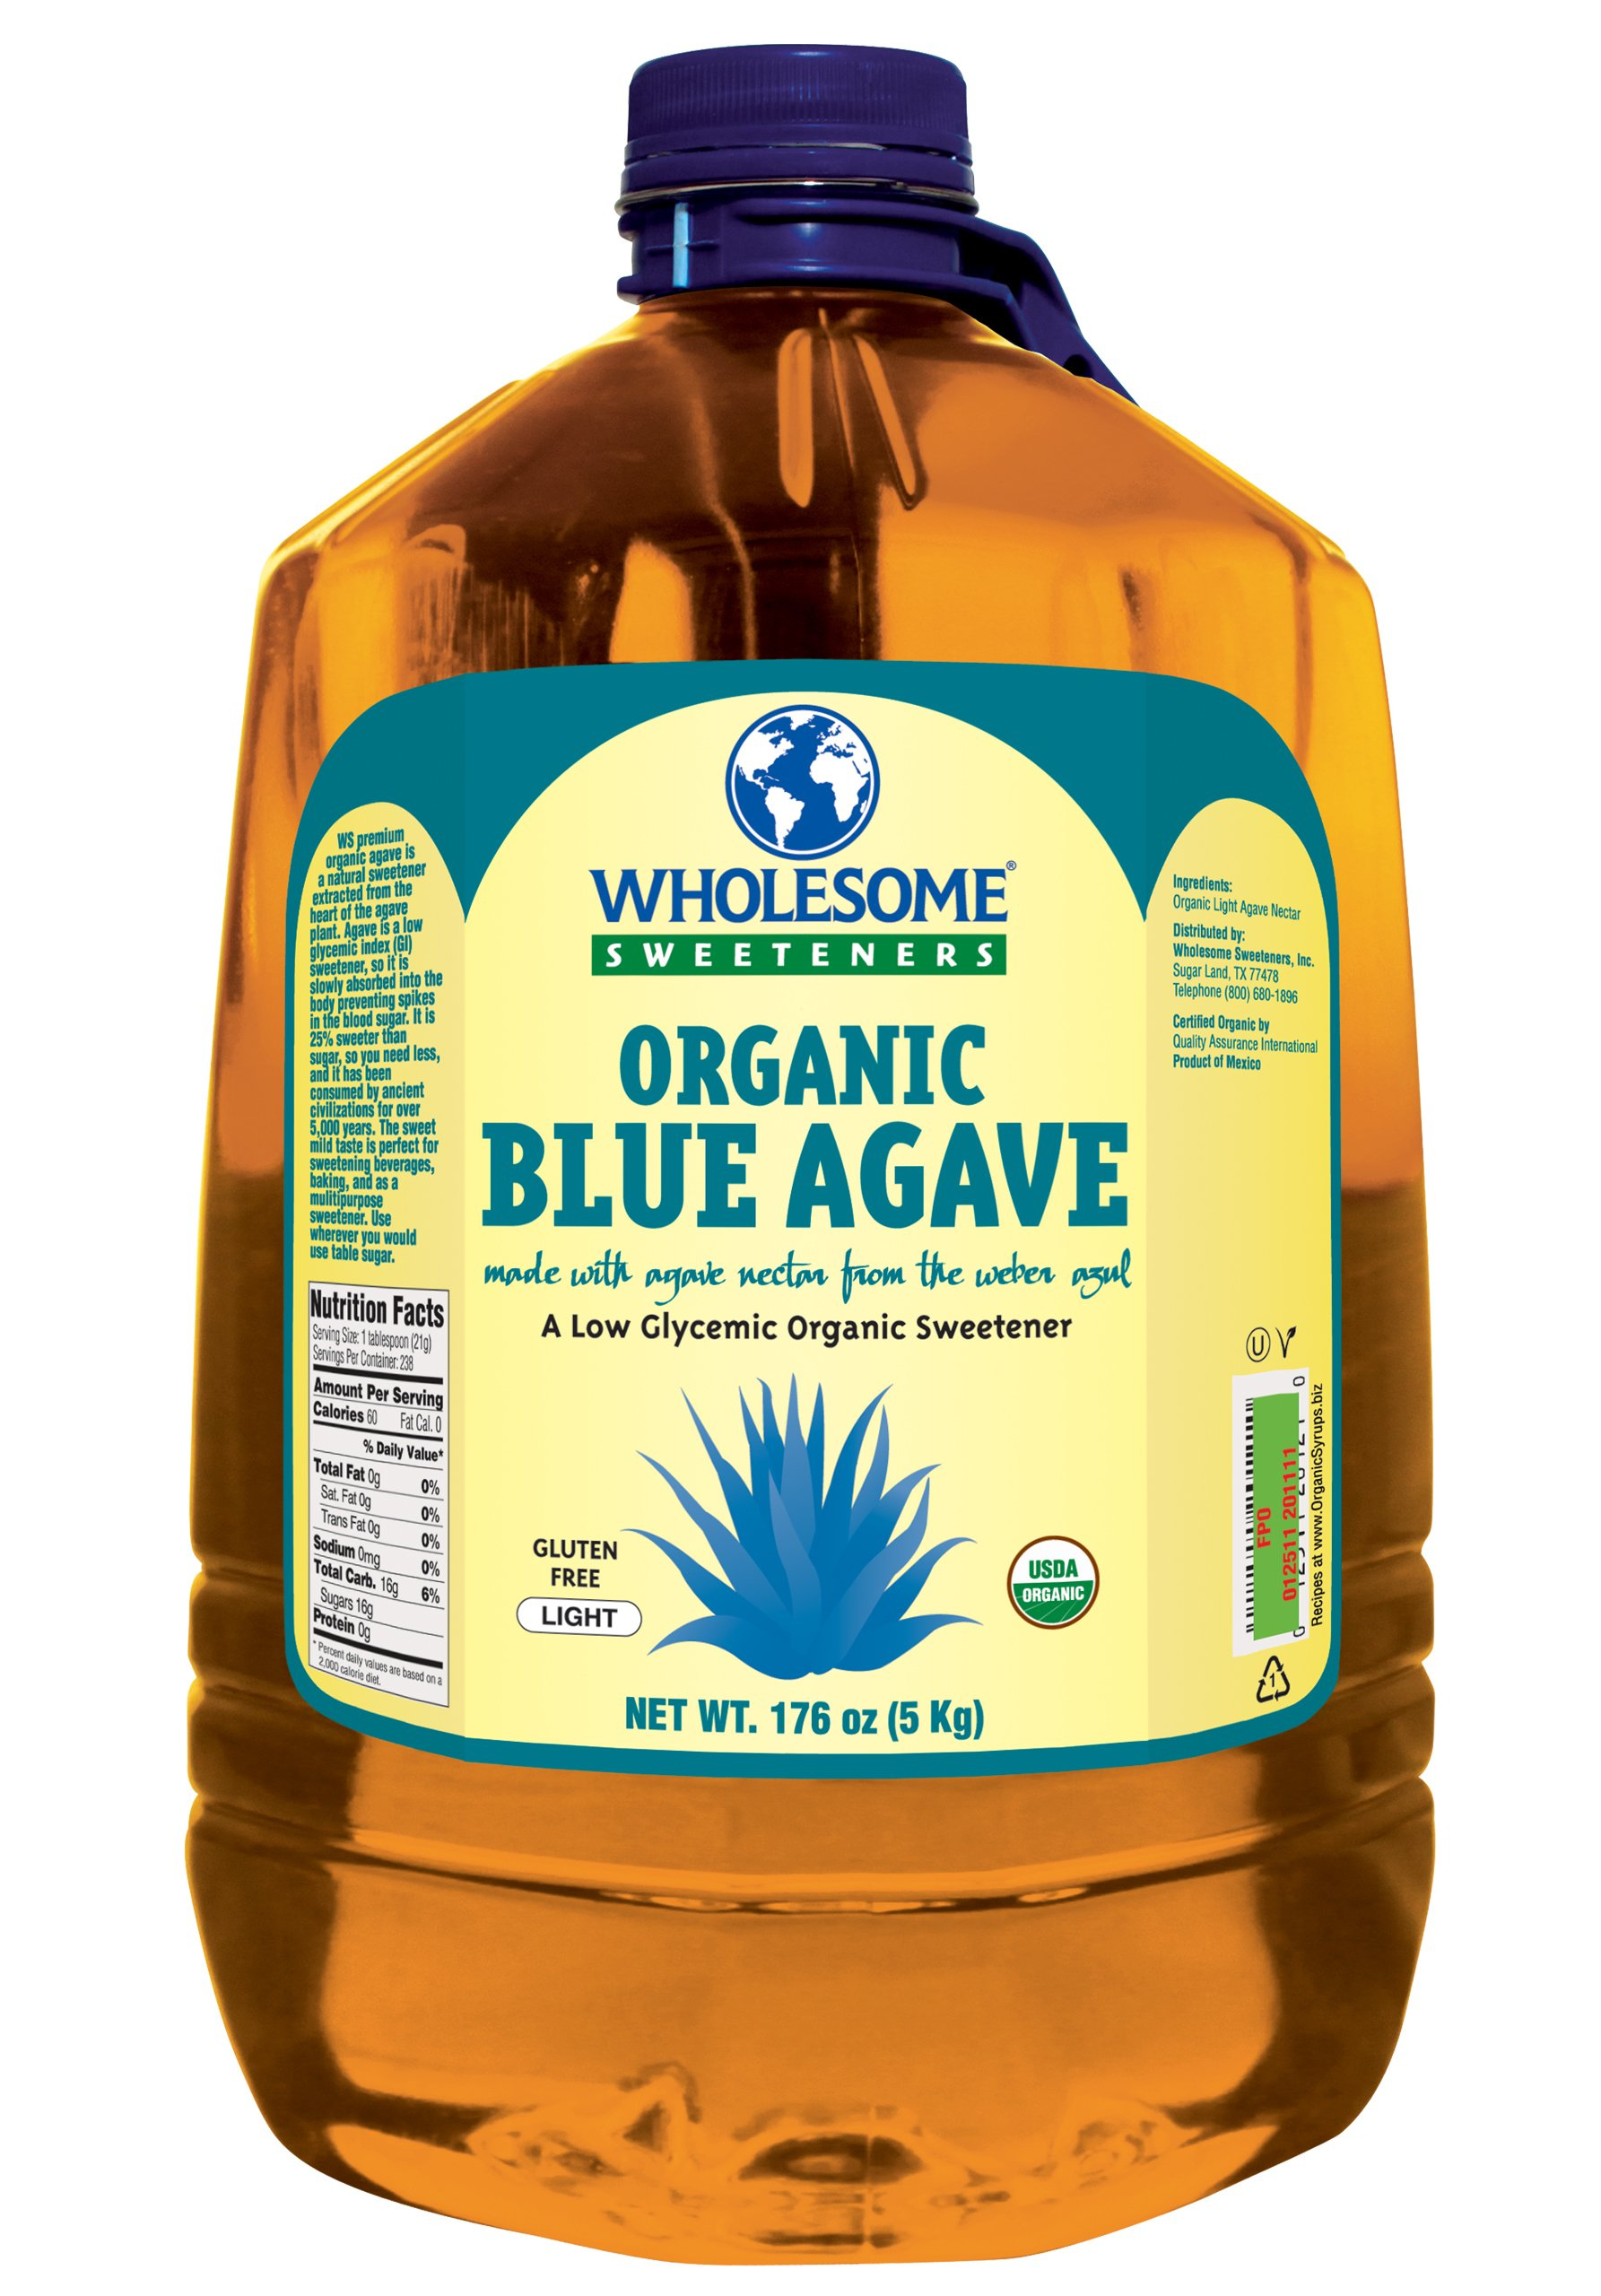 Wholesome Sweeteners Organic Blue Agave, 176oz , 1 Case by Wholesome Sweeteners